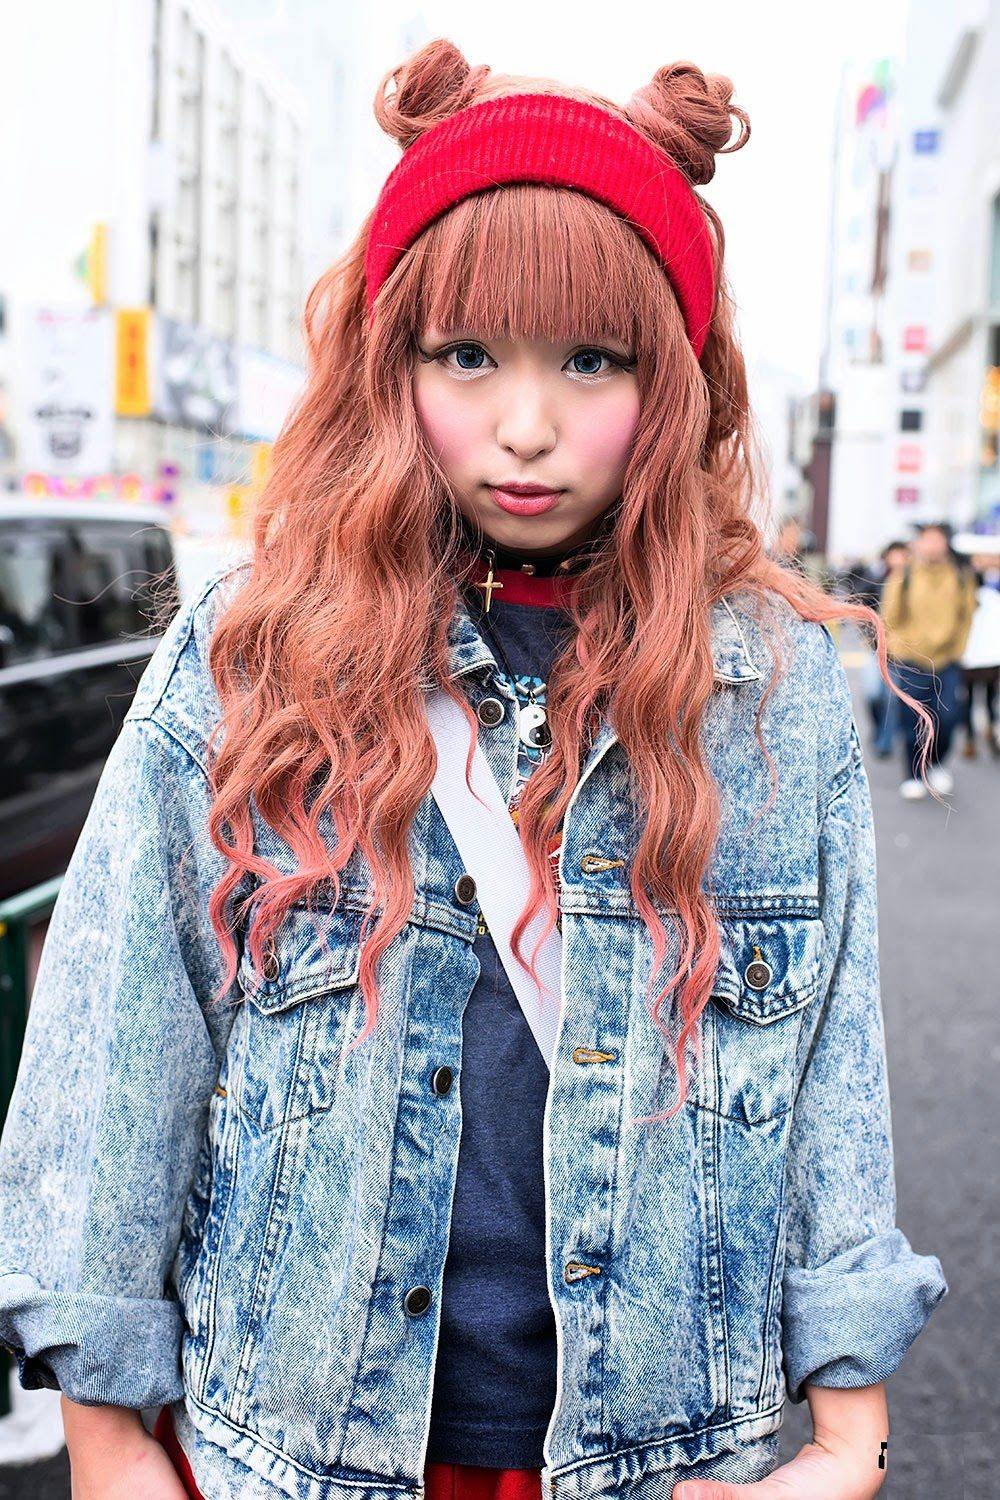 Exceptional harajuka girl hairstyles new hairstyles